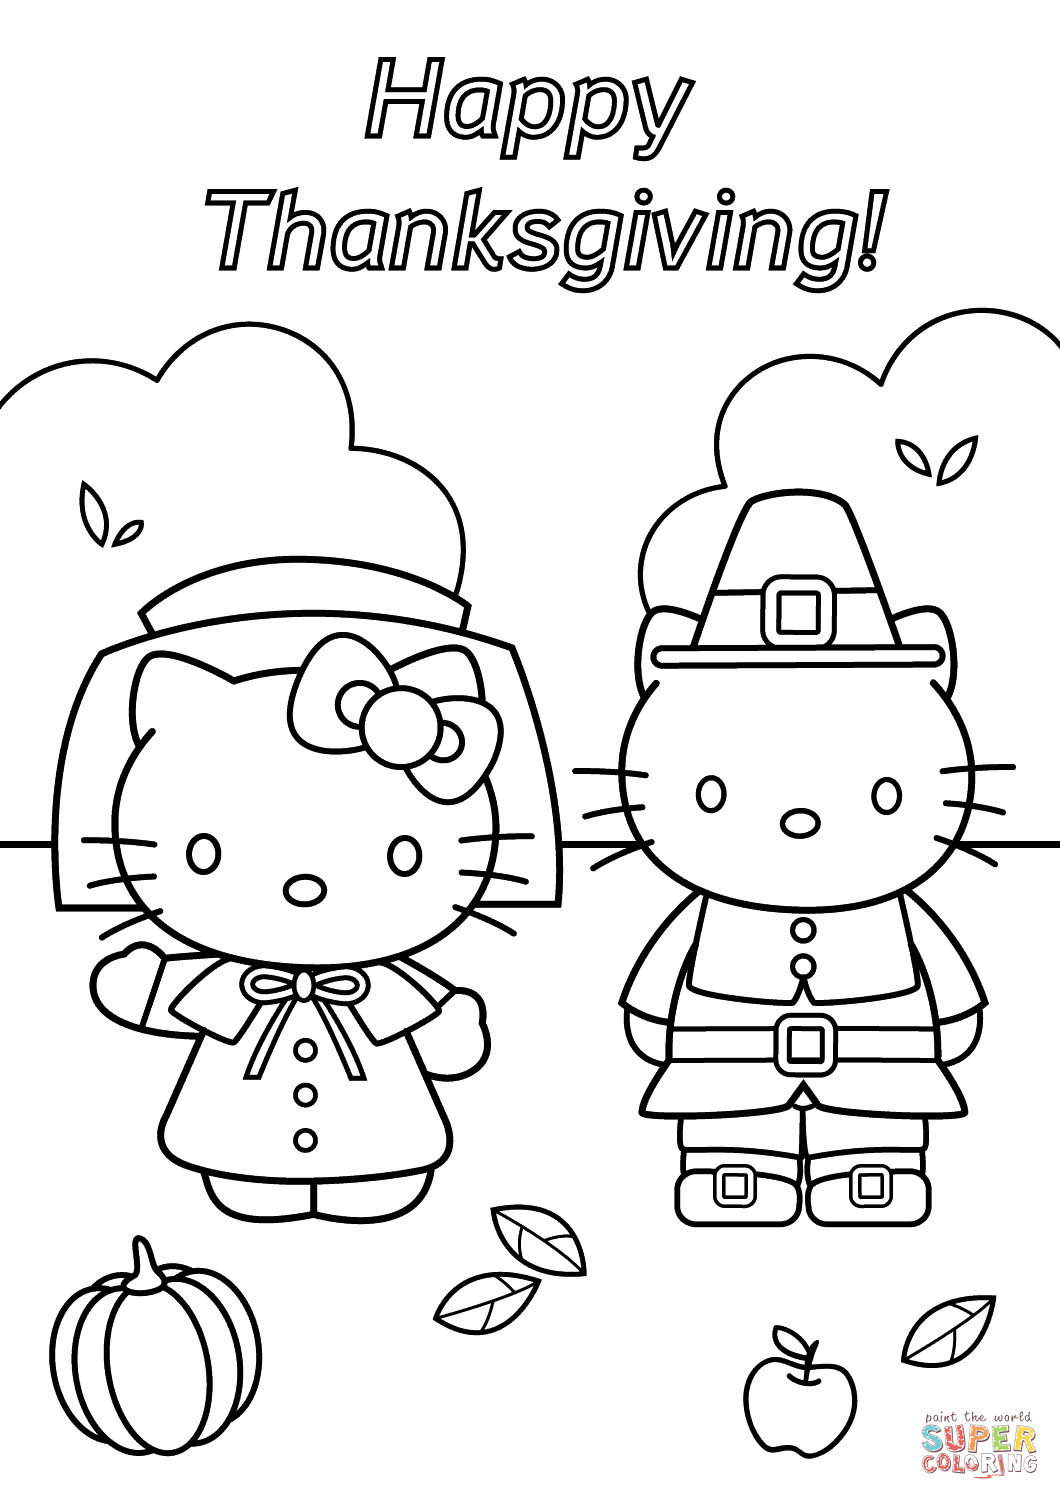 Word Search Coloring Pages To Print Coloring Pages Thanksgivingoring Pages For Kids Cornucopia Pilgrim